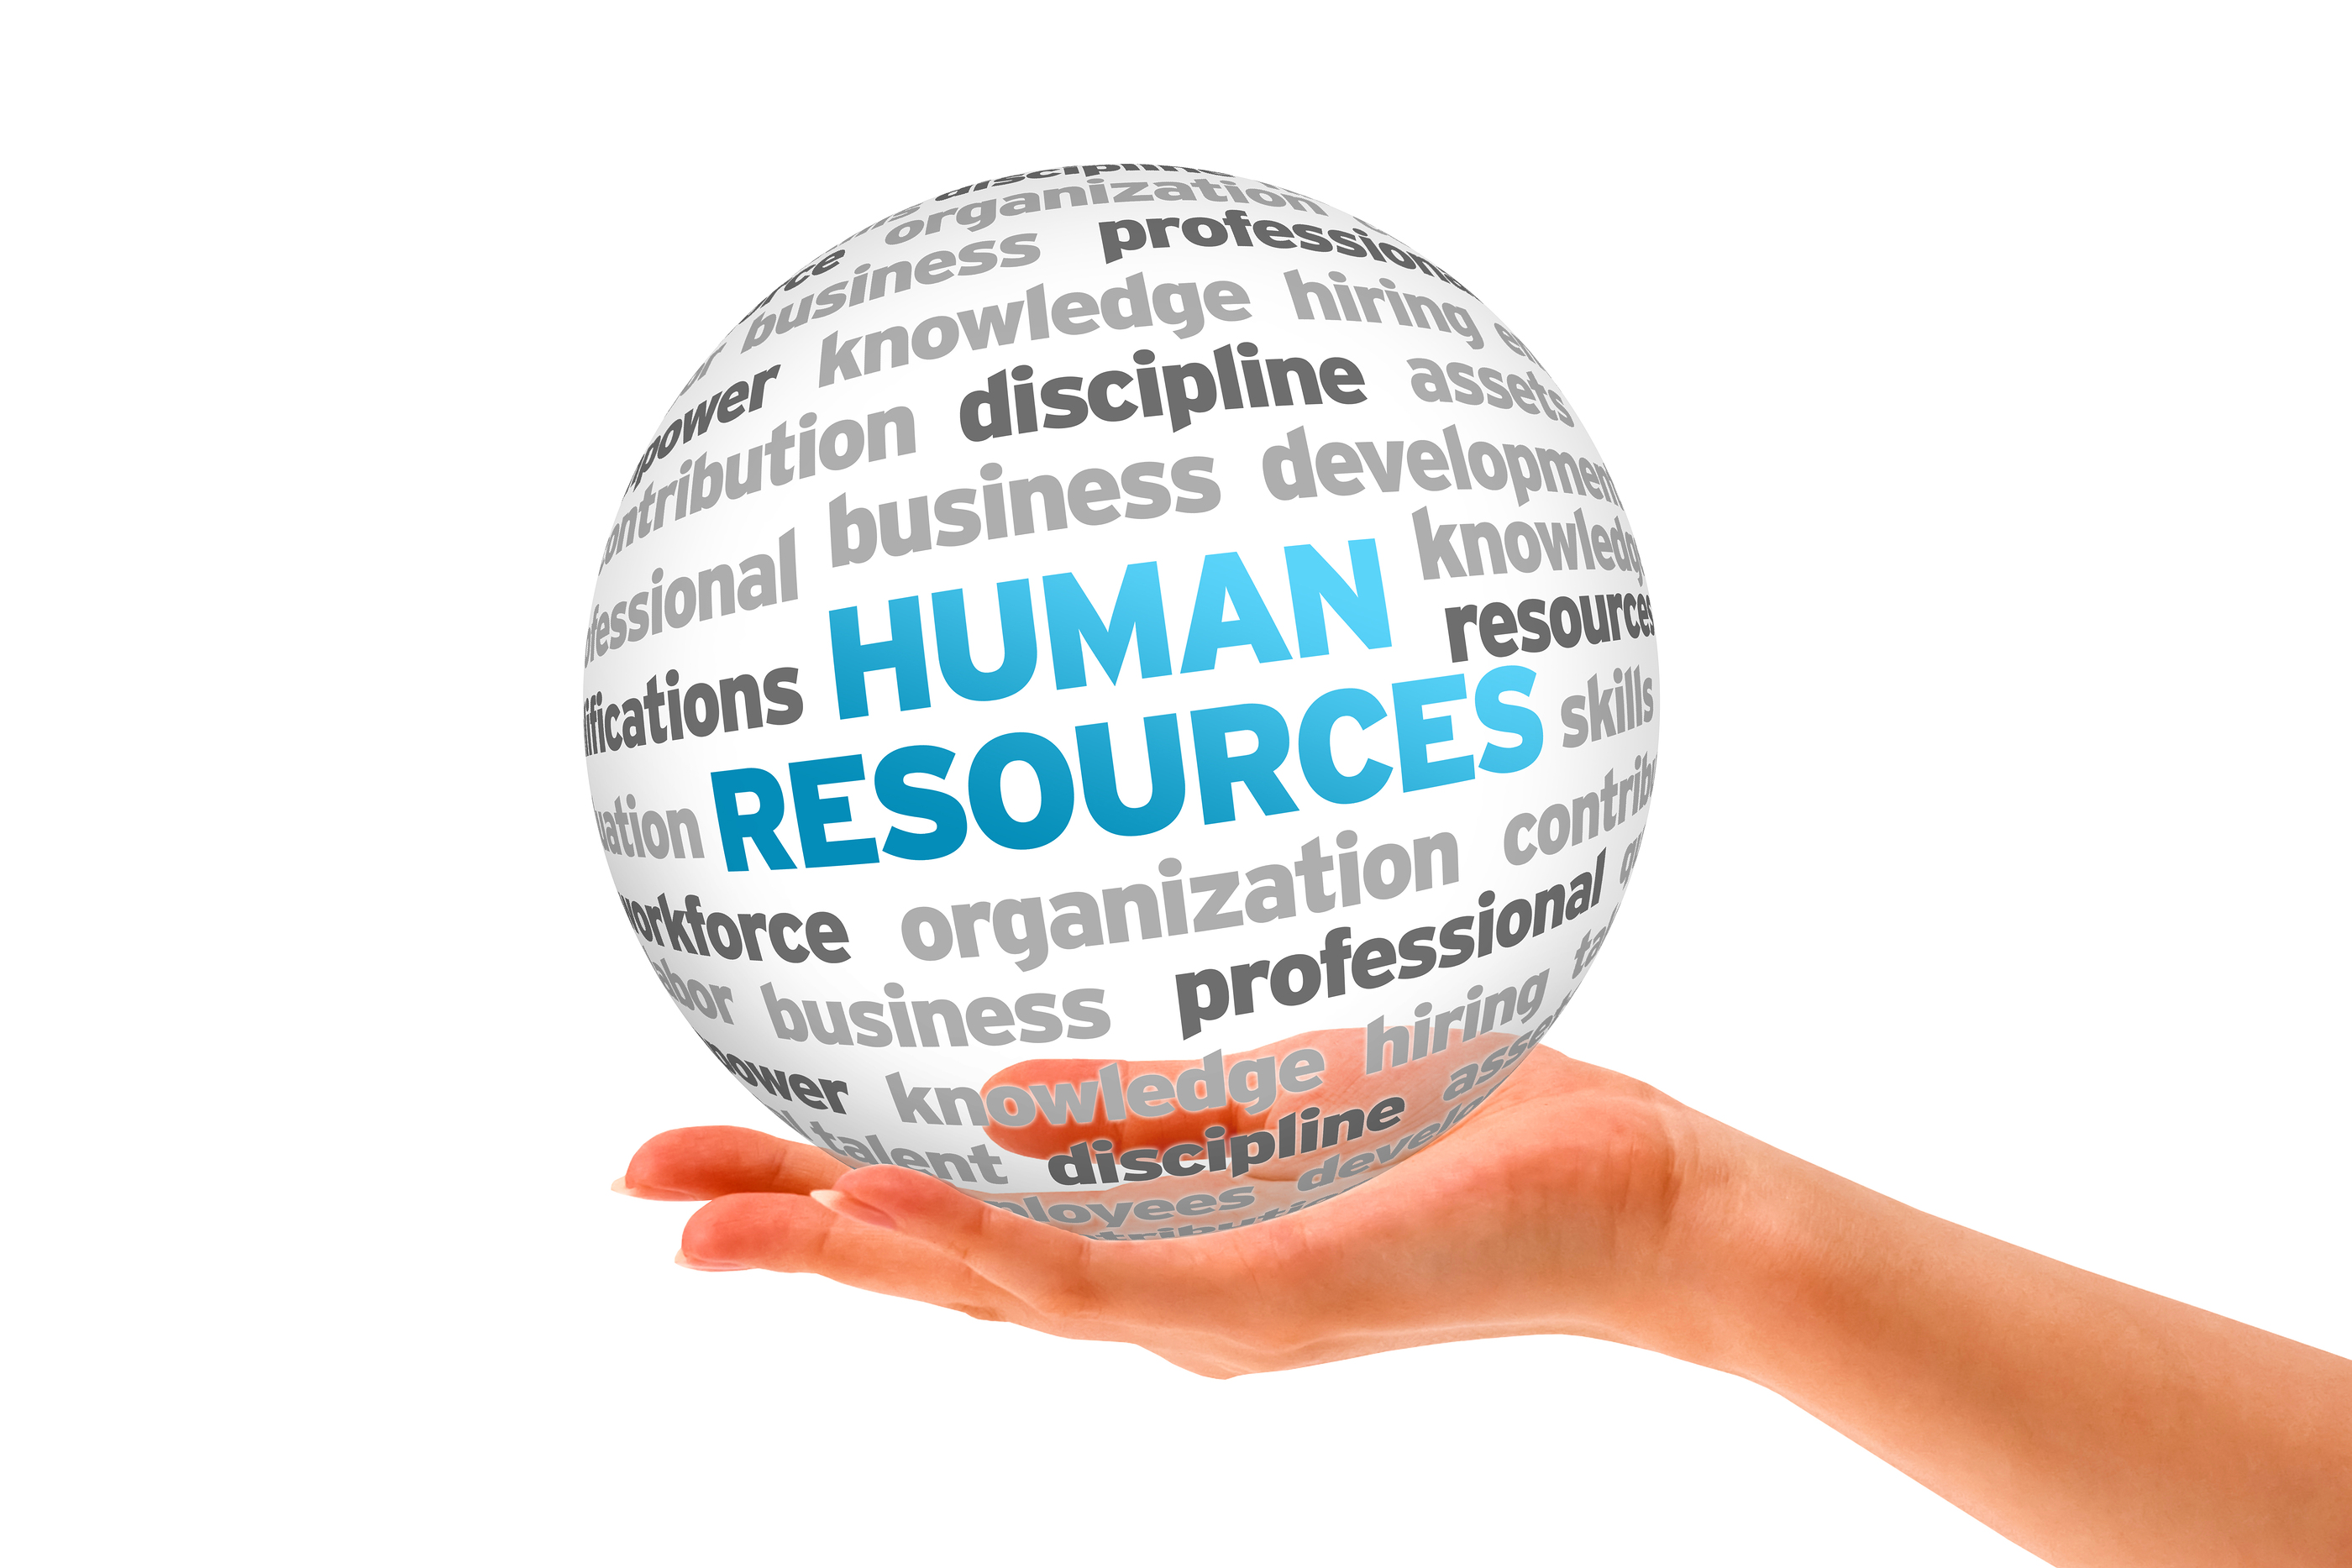 Human Resources city college of ny subjects